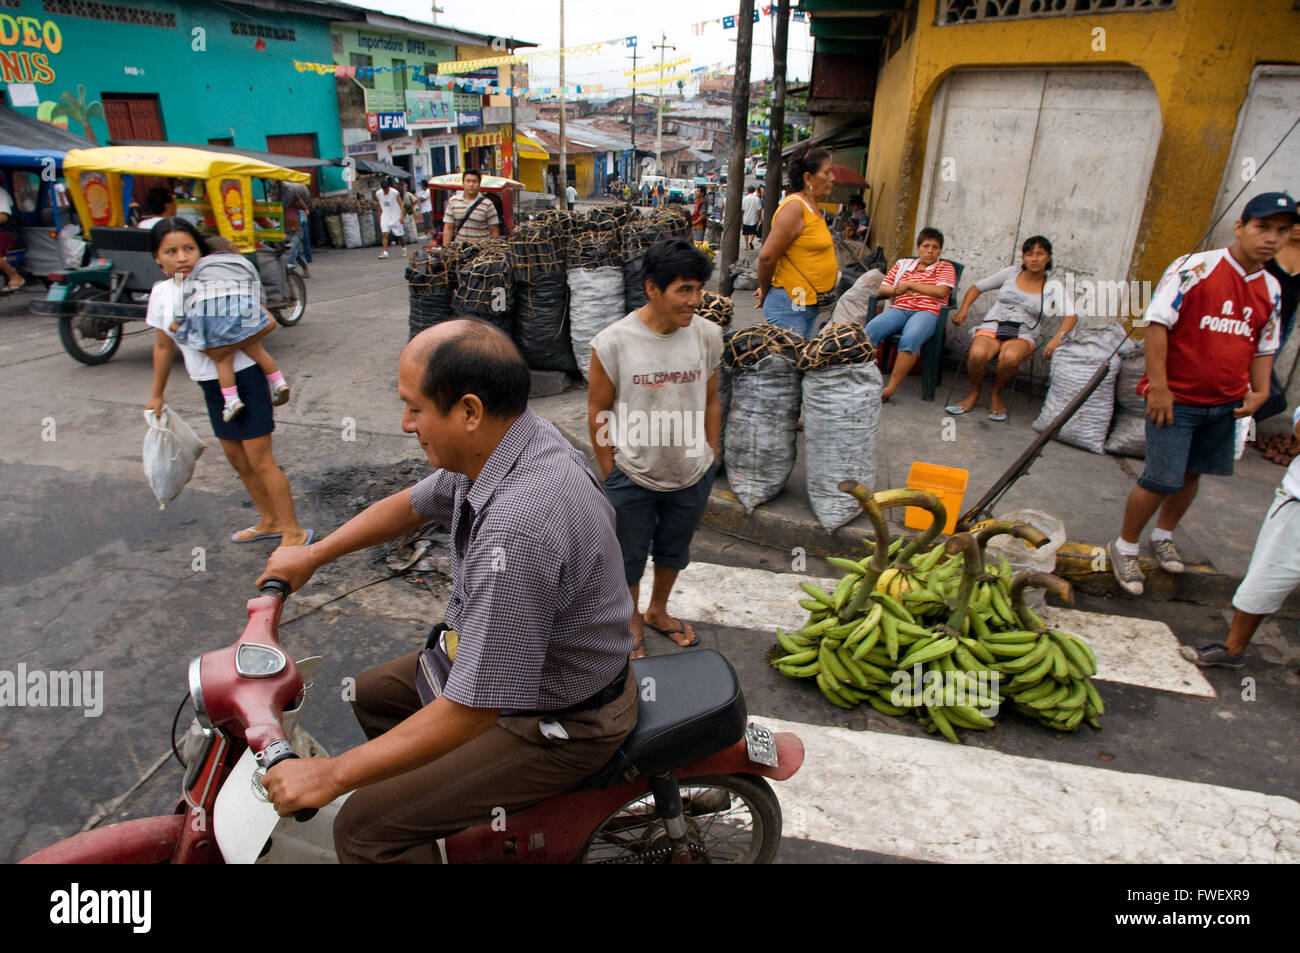 Street scenes, Iquitos, Loreto, the largest city in the Peruvian rainforest and the fifthlargest city of Peru. One - Stock Image